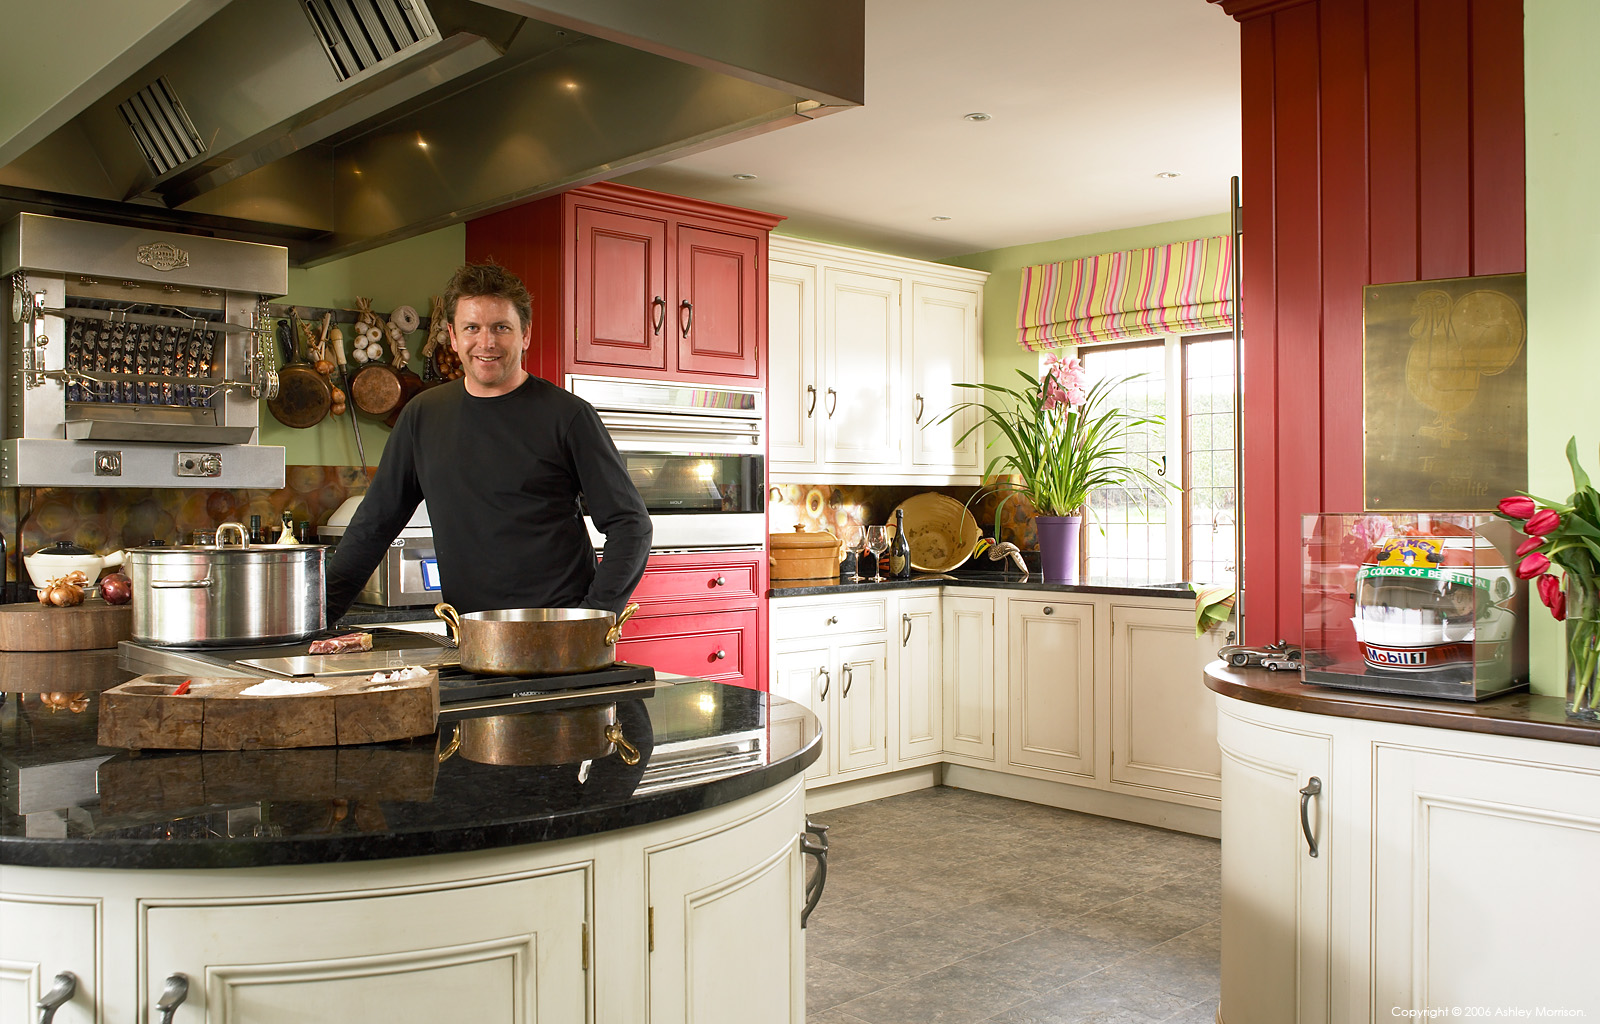 English TV celebrity chef James Martin in the kitchen of his Winchester home.